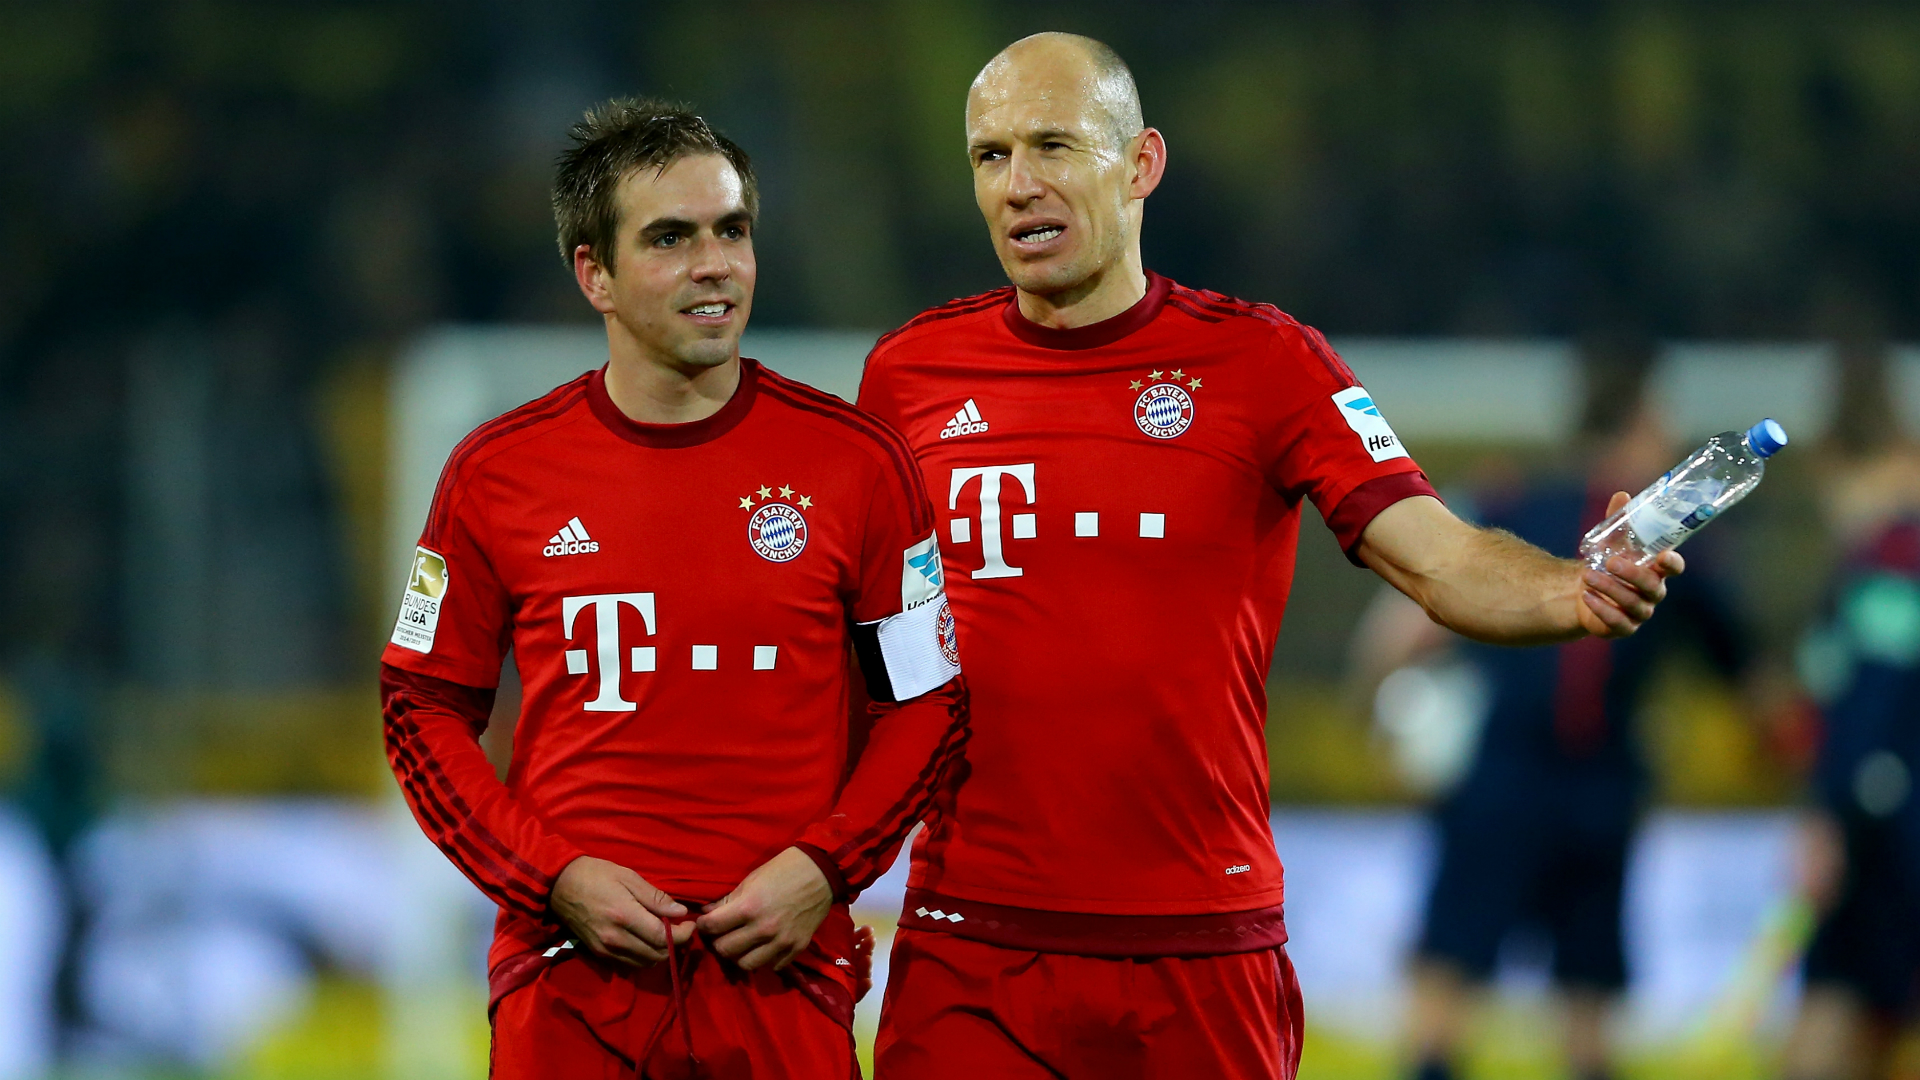 Bayern's Ribery to miss Arsenal clash